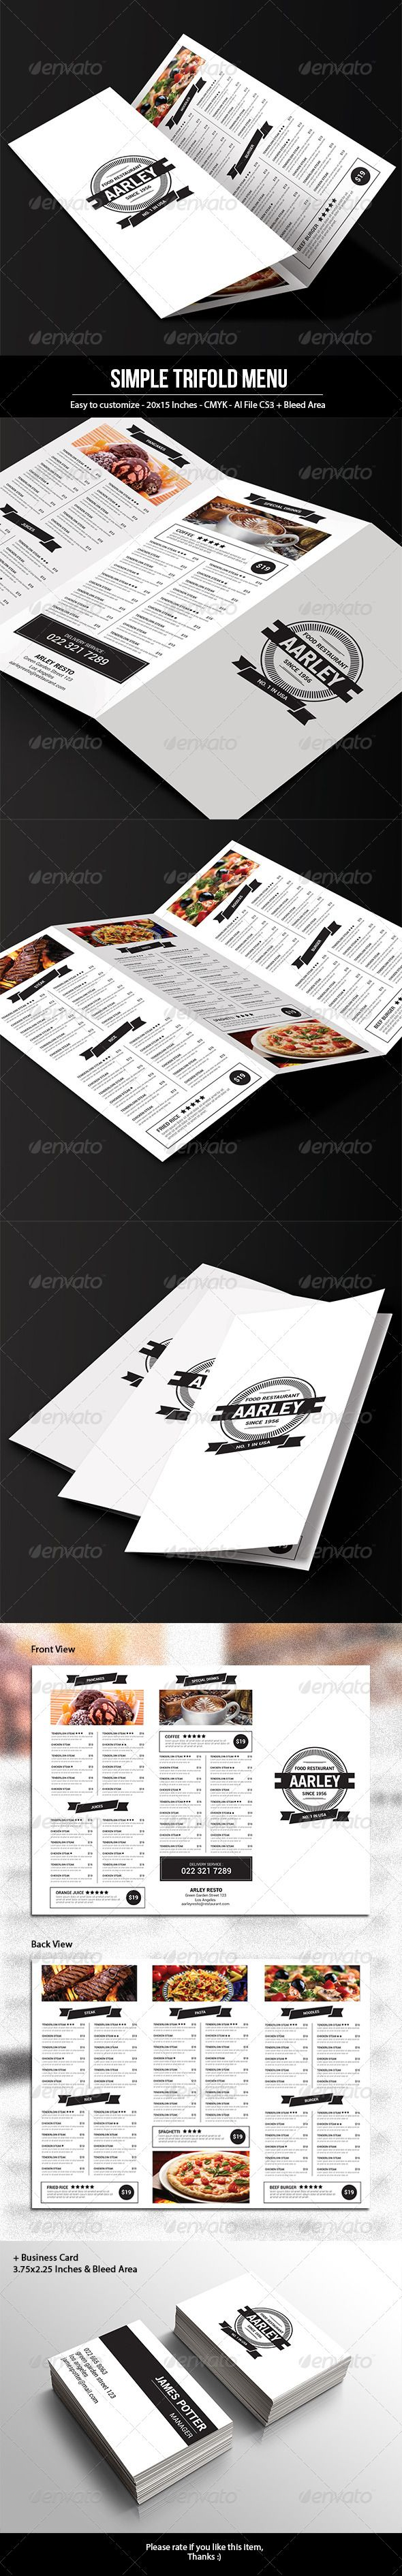 Simple Trifold Menu Template #design #speisekarte Download: http://graphicriver.net/item/simple-trifold-menu/7769853?ref=ksioks